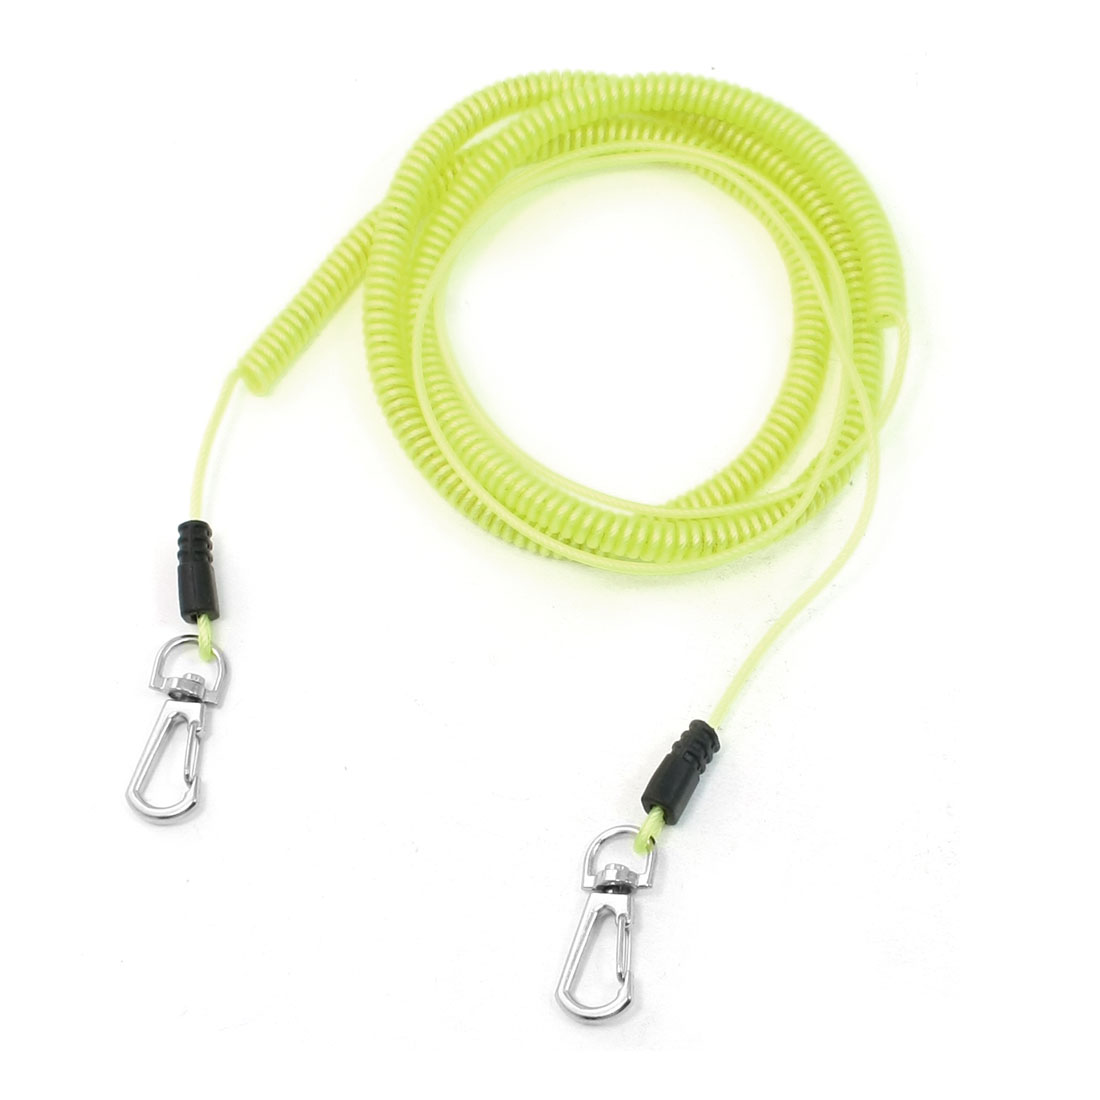 8M Stretched Length Contractility Soft Plastic Coiled Fishing Lanyard Yellow